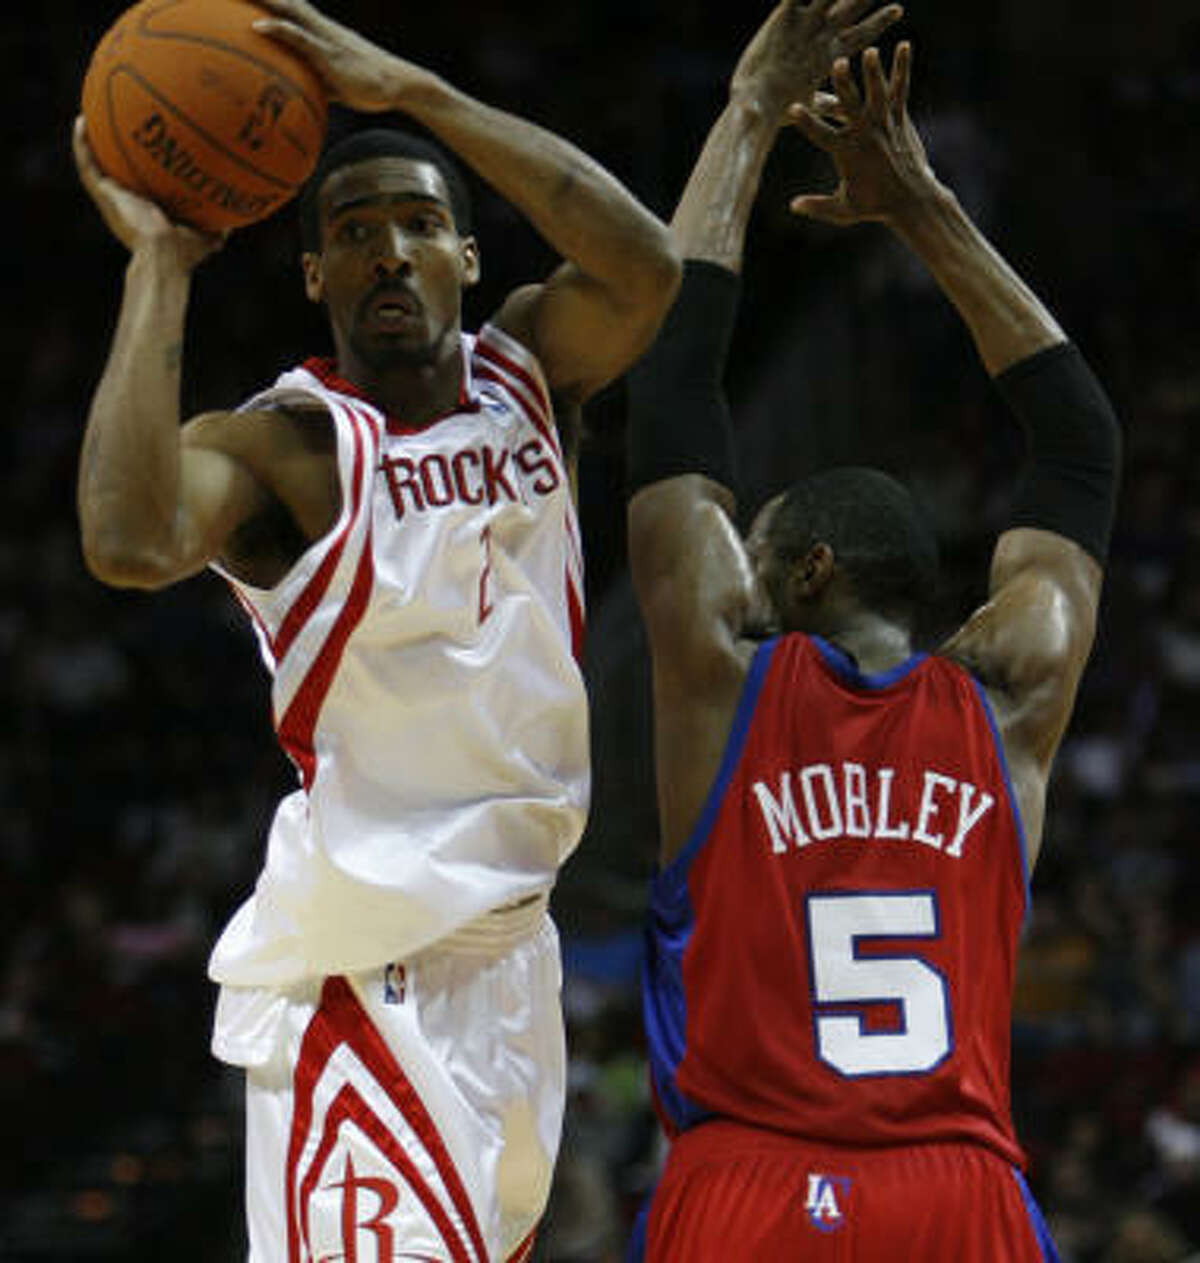 Rockets guard Luther Head looks for room around former Rockets guard Cuttino Mobley.